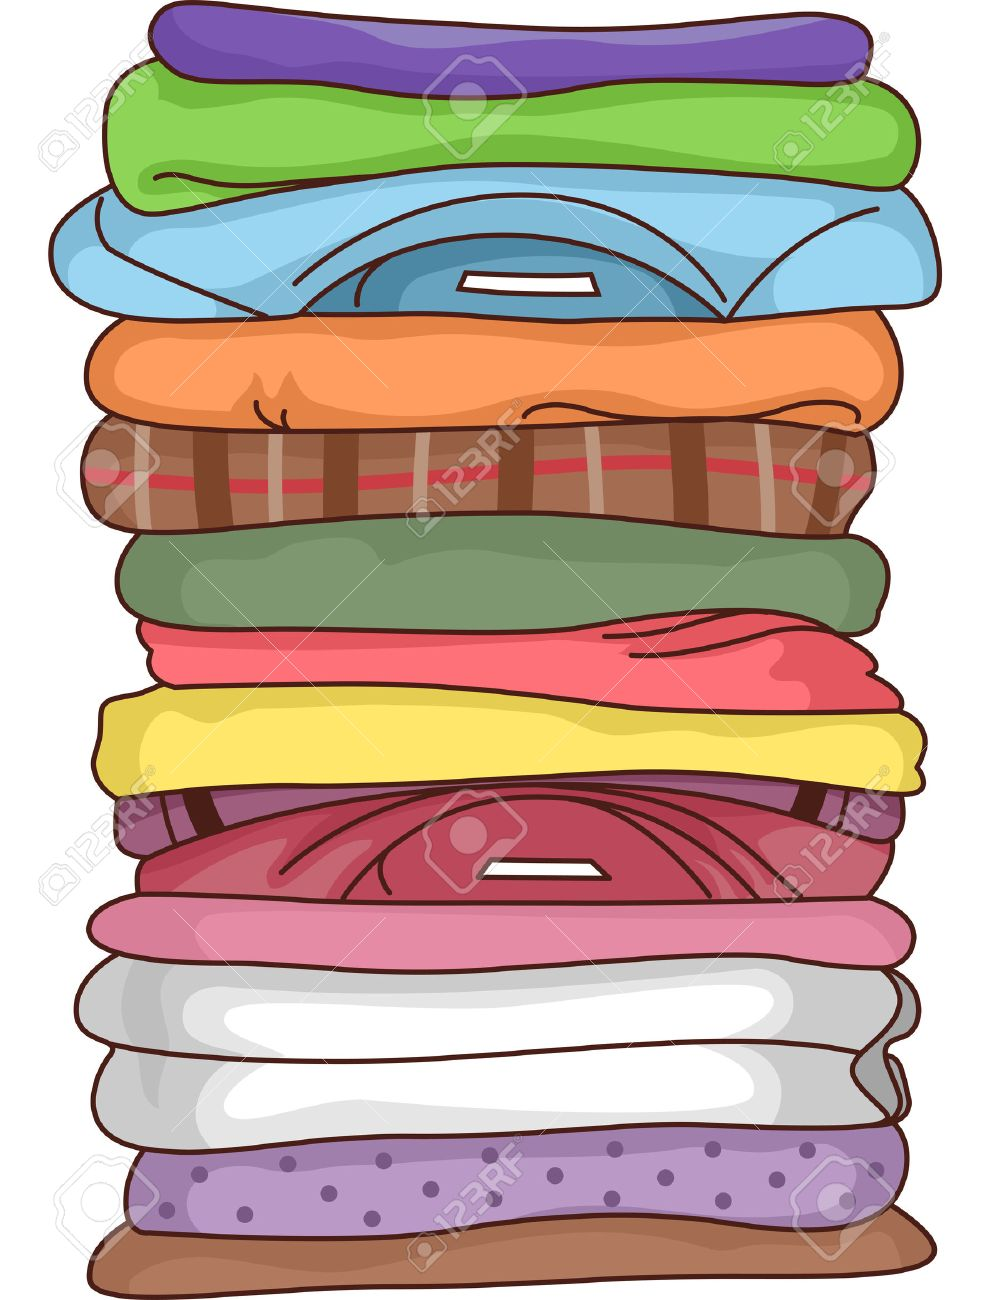 Illustration Featuring a Pile of Folded Clothes - 31863220